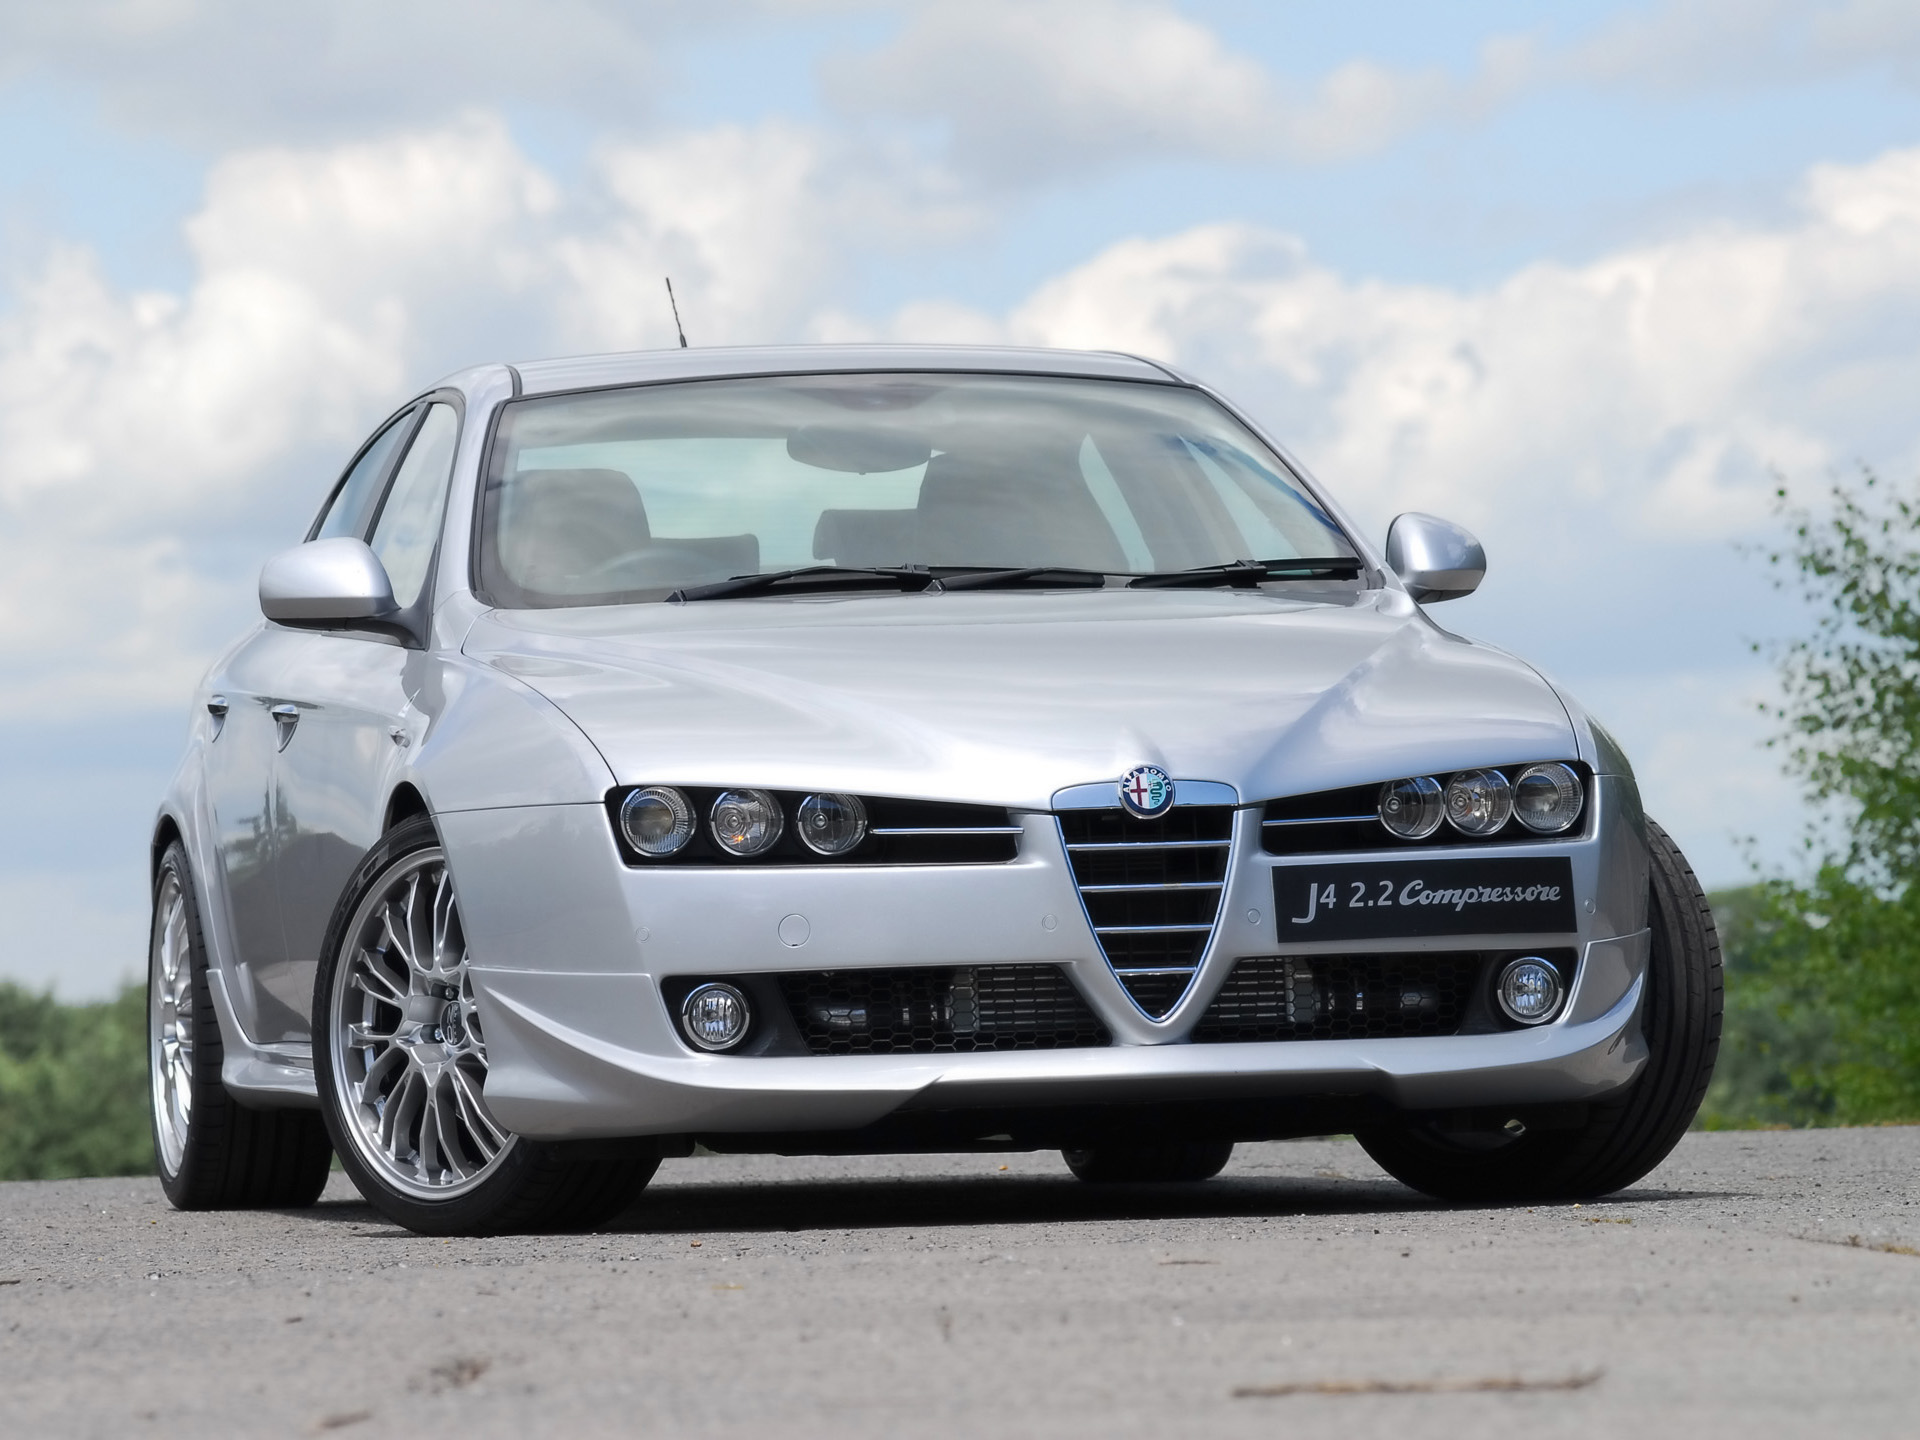 Alfa Romeo 159 photo 57242